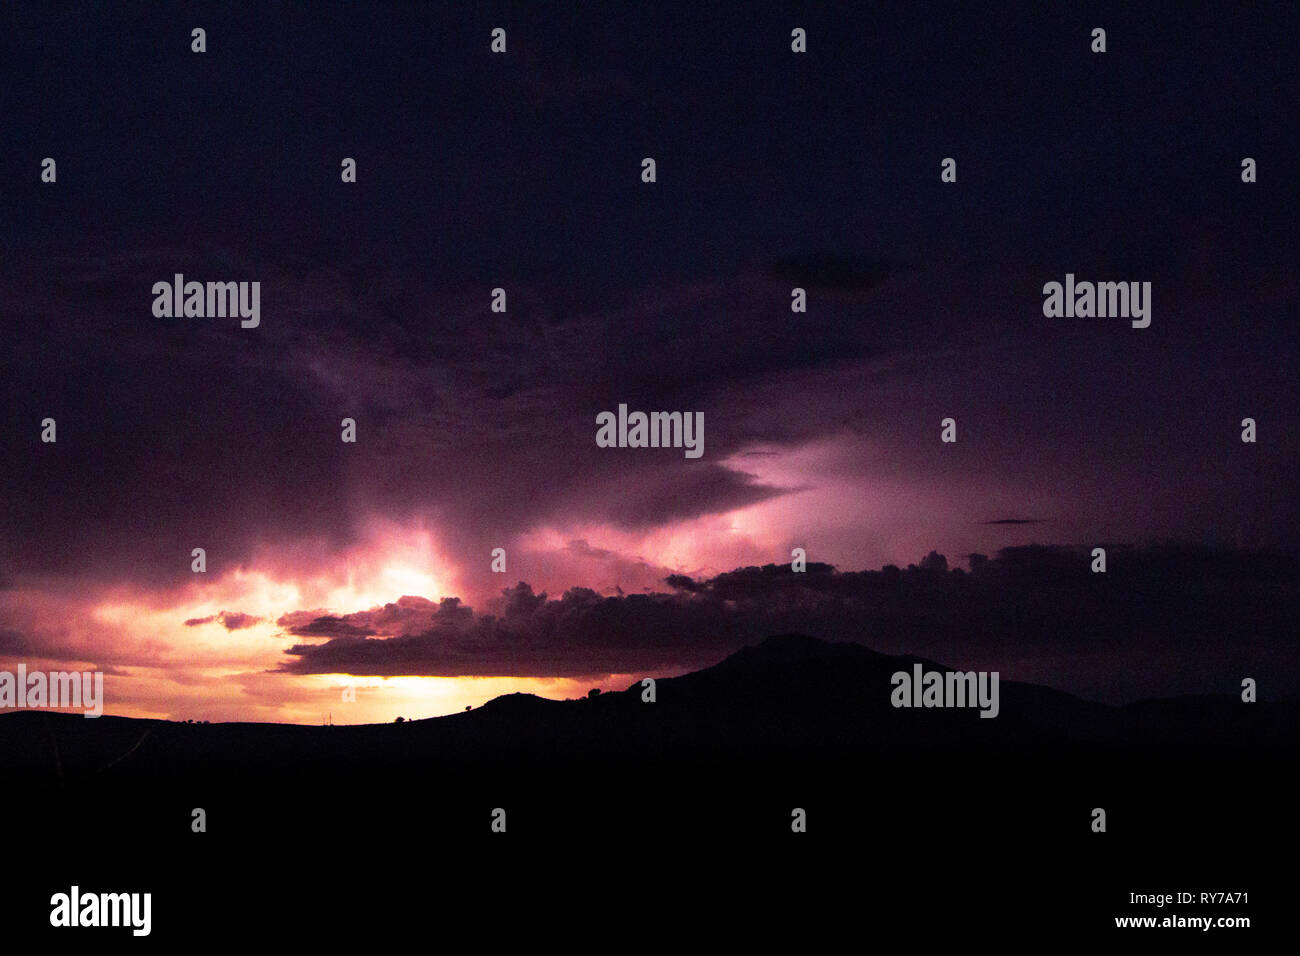 A summer storm rolls in on desert mountains. - Stock Image